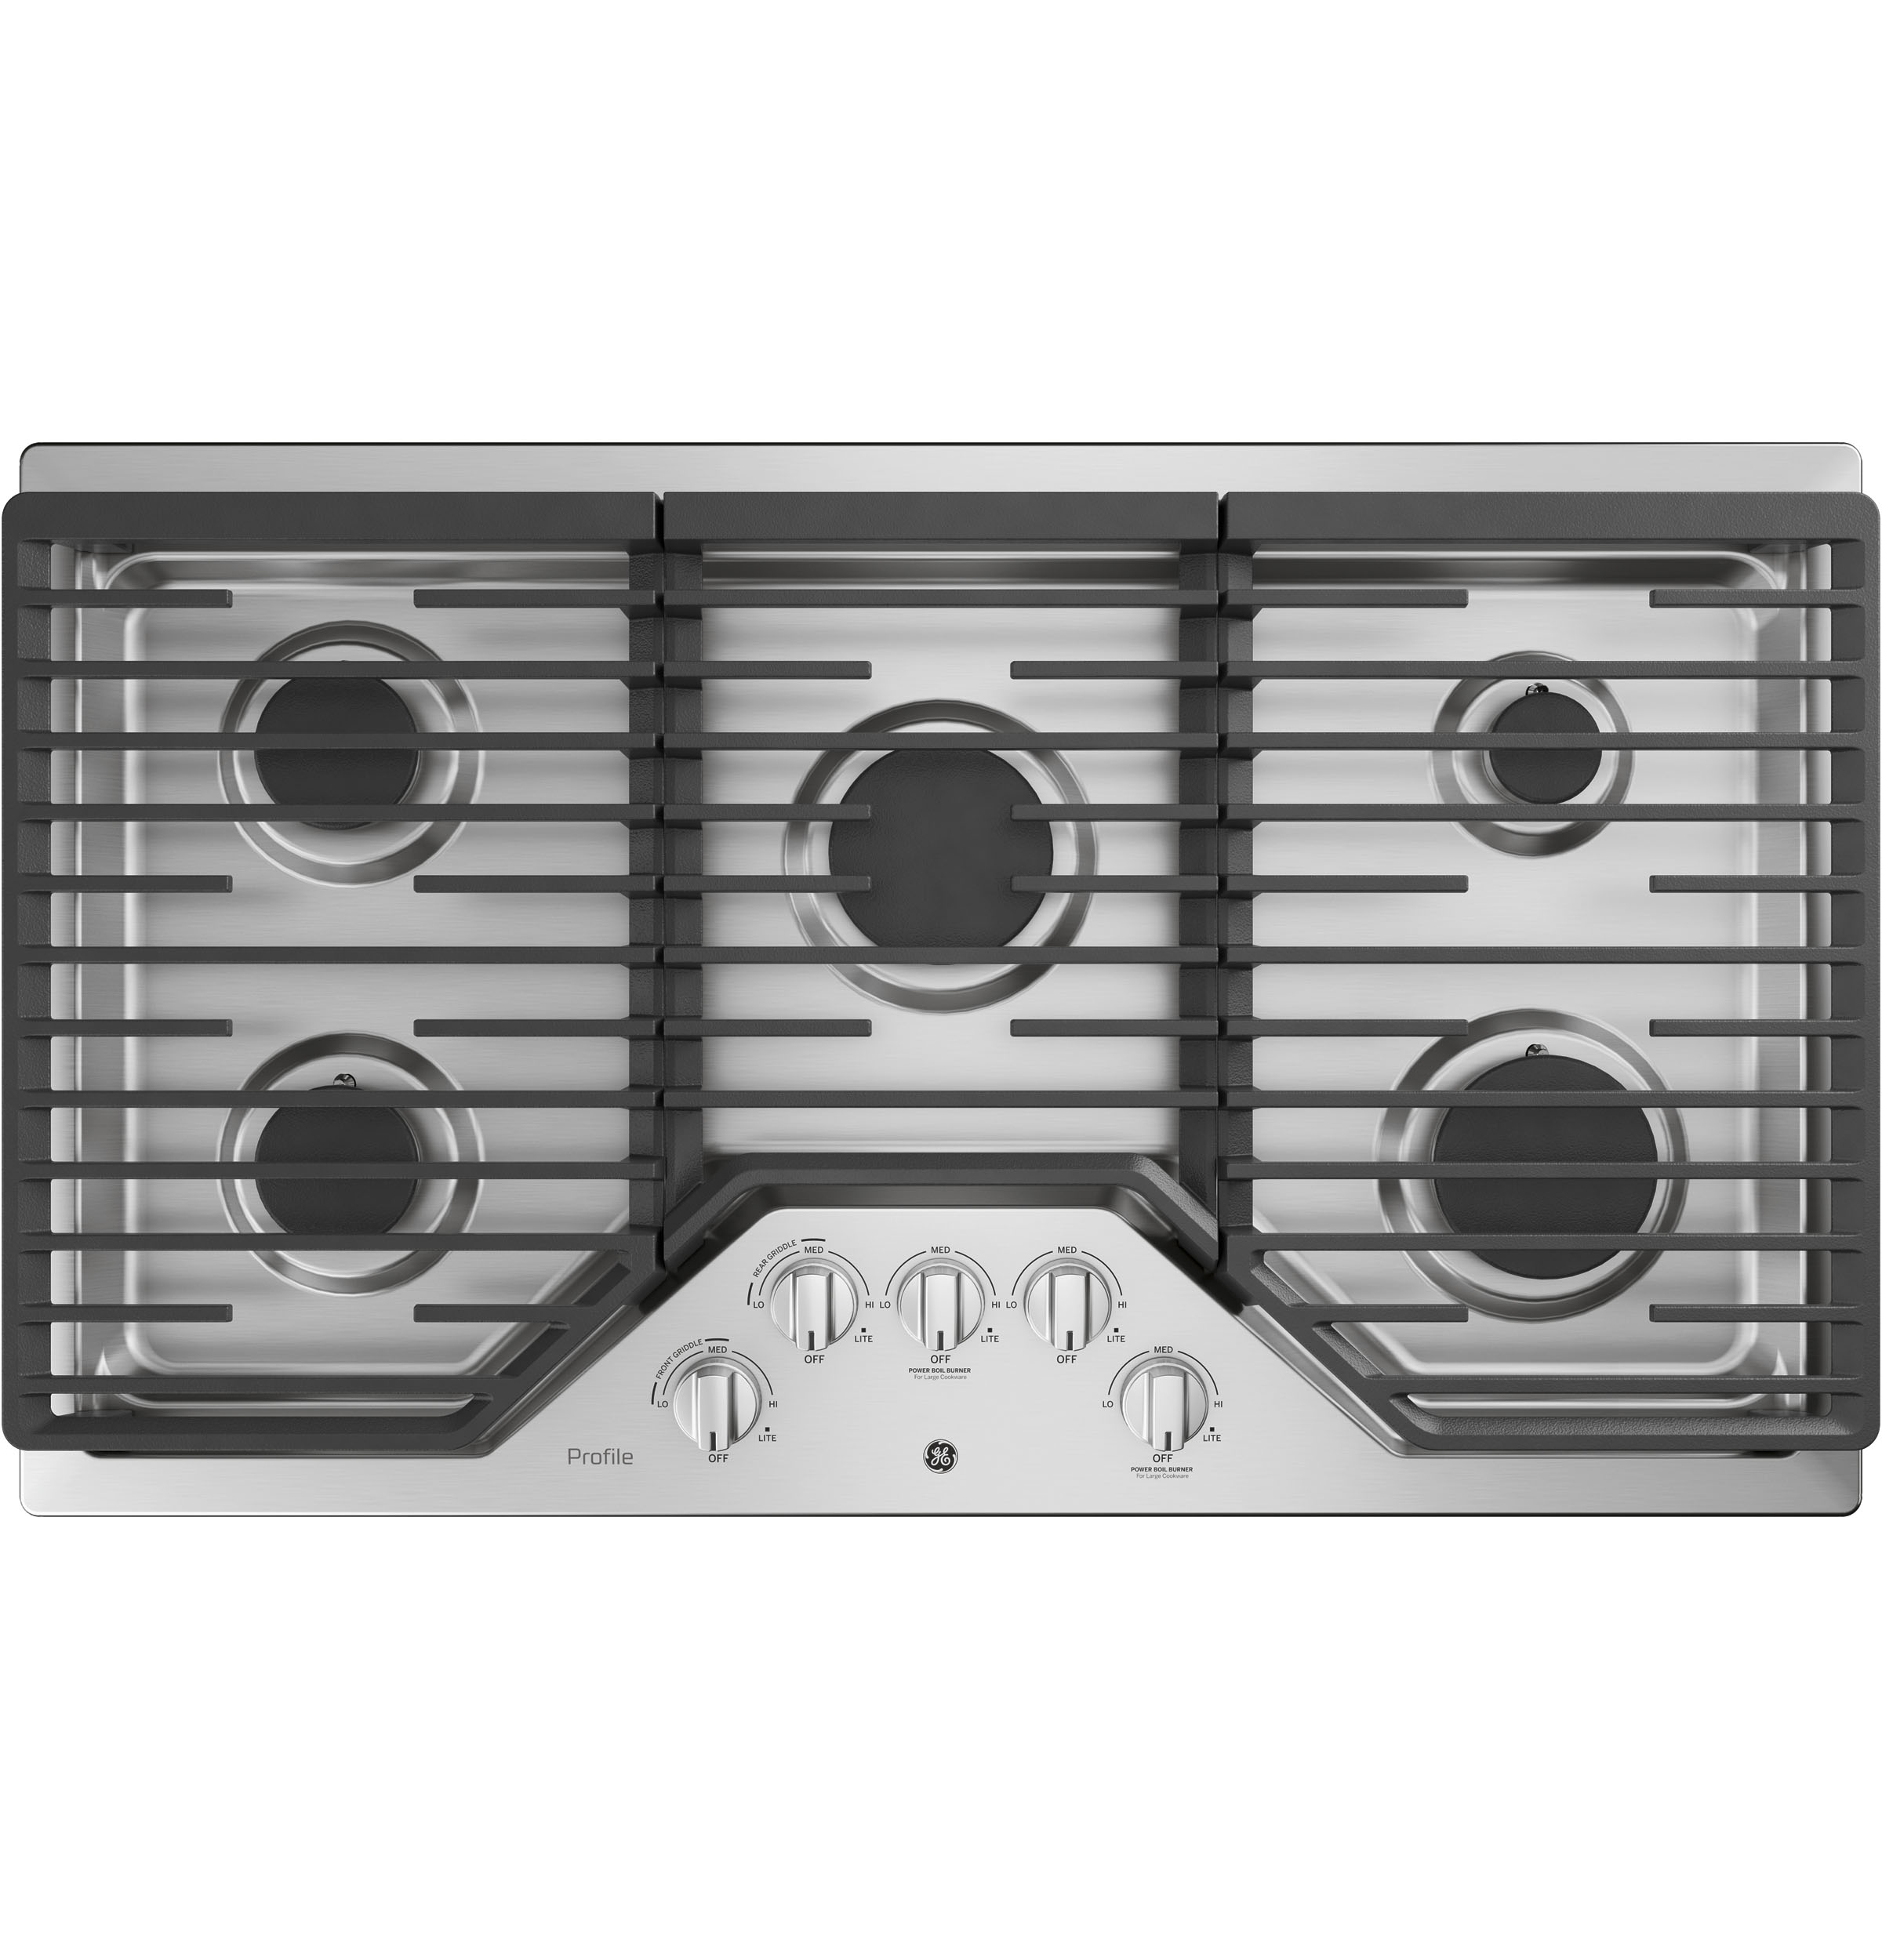 "Profile GE Profile™ 36"" Built-In Gas Cooktop with Optional Extra-Large Cast Iron Griddle"